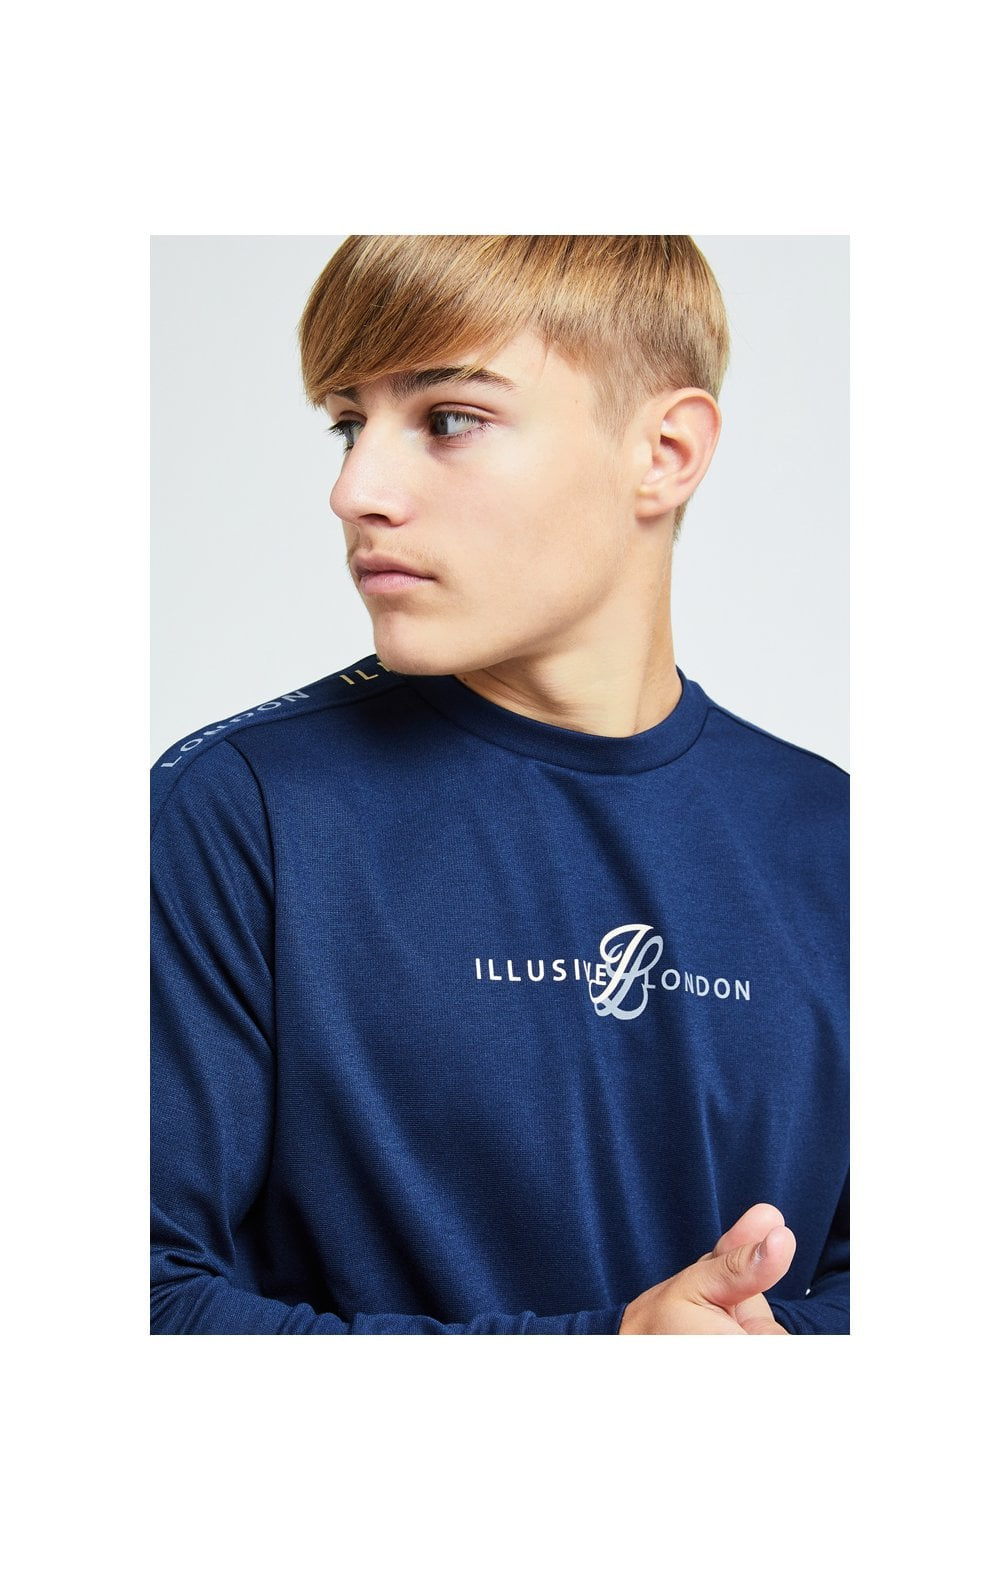 Load image into Gallery viewer, Illusive London Legacy Crew Sweater - Navy & Cream (1)